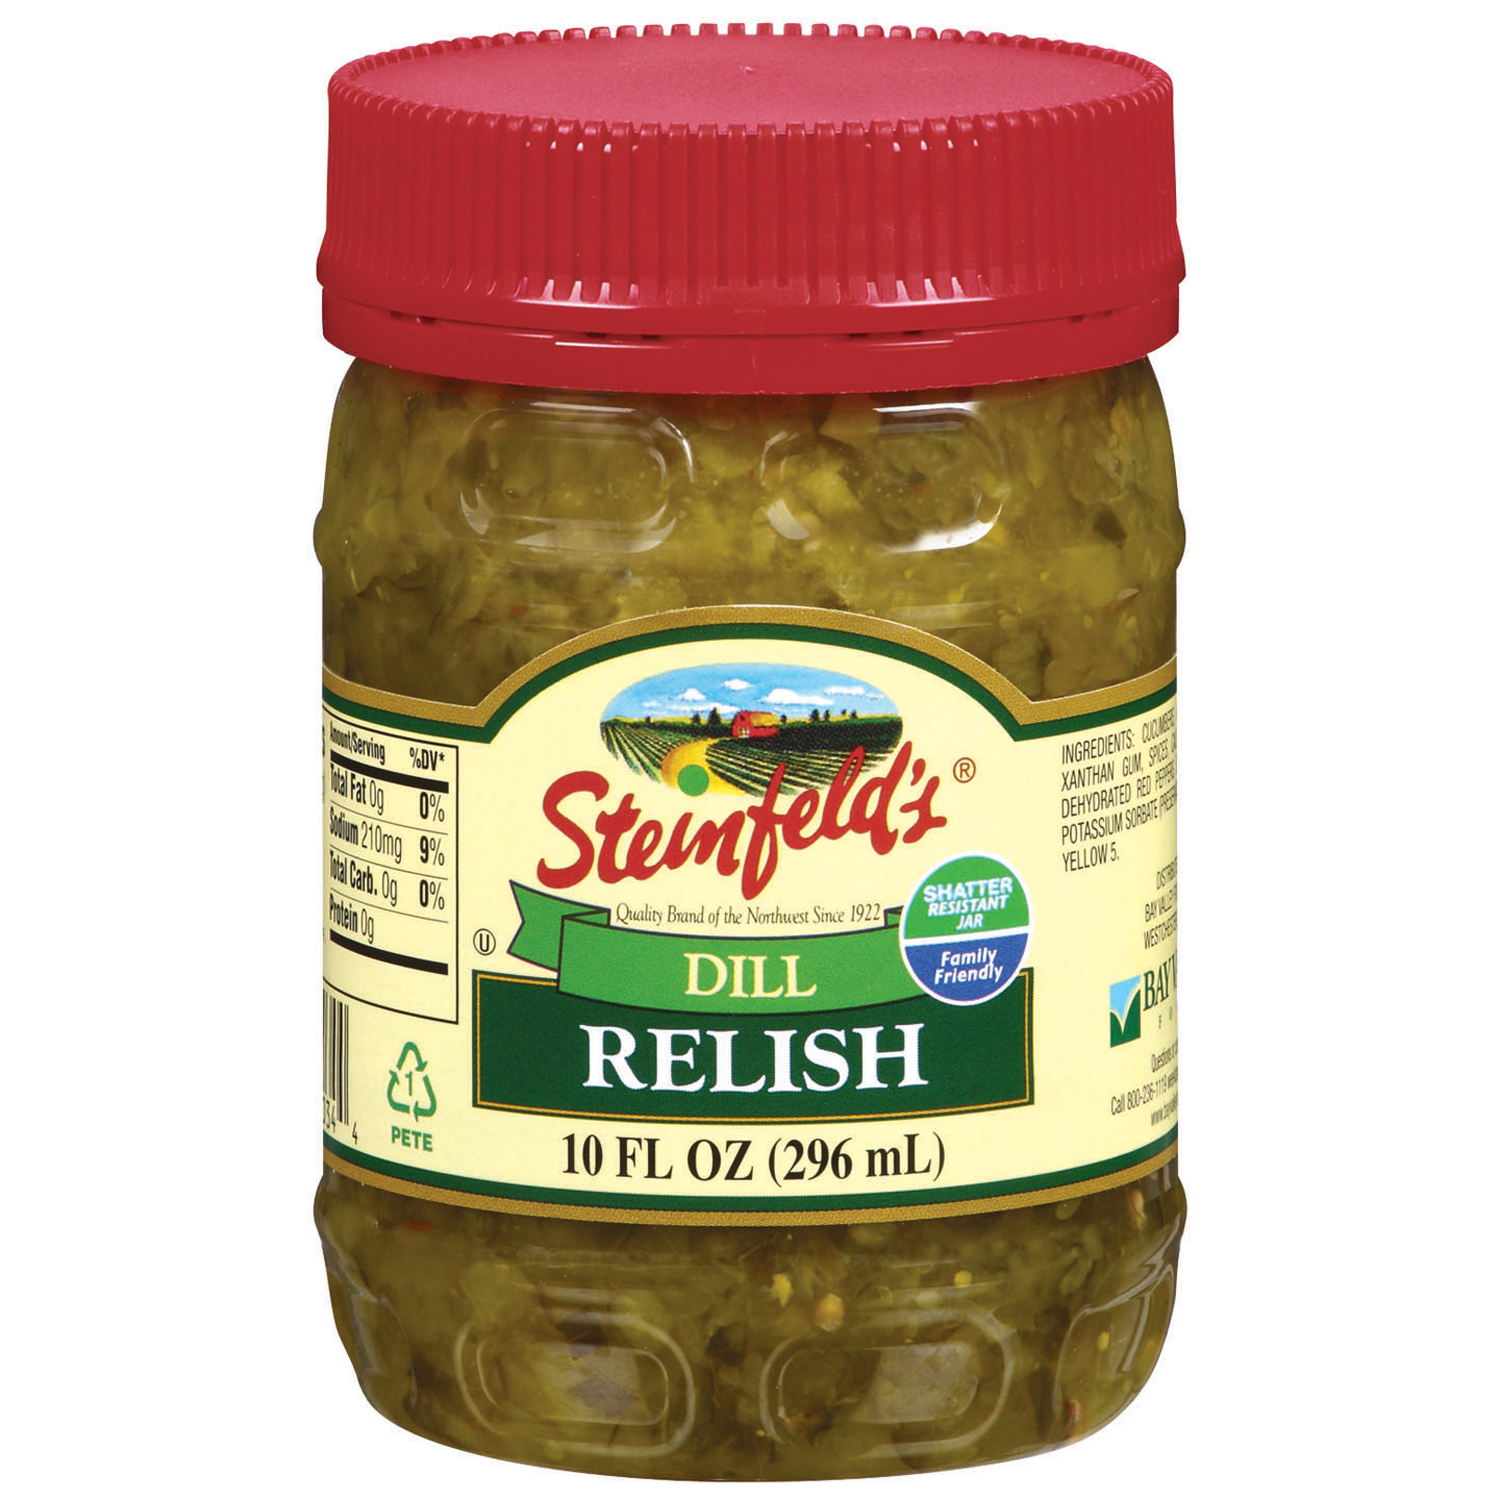 Steinfeld's Dill Pickle Relish, 10 oz